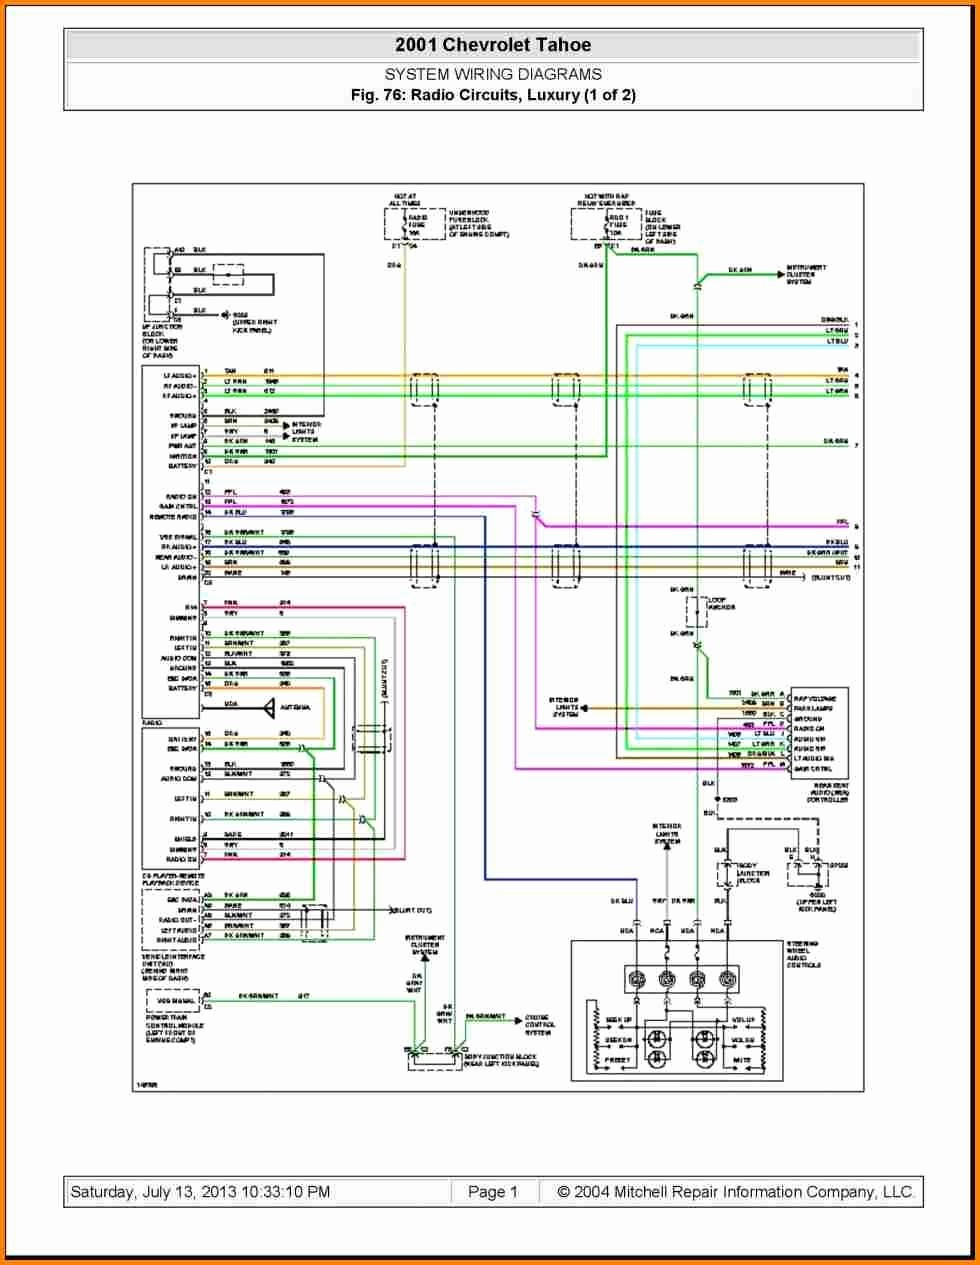 95 Chevy Tail Light Wiring Wiring Diagram Used 76 Gmc Tail Light Wiring